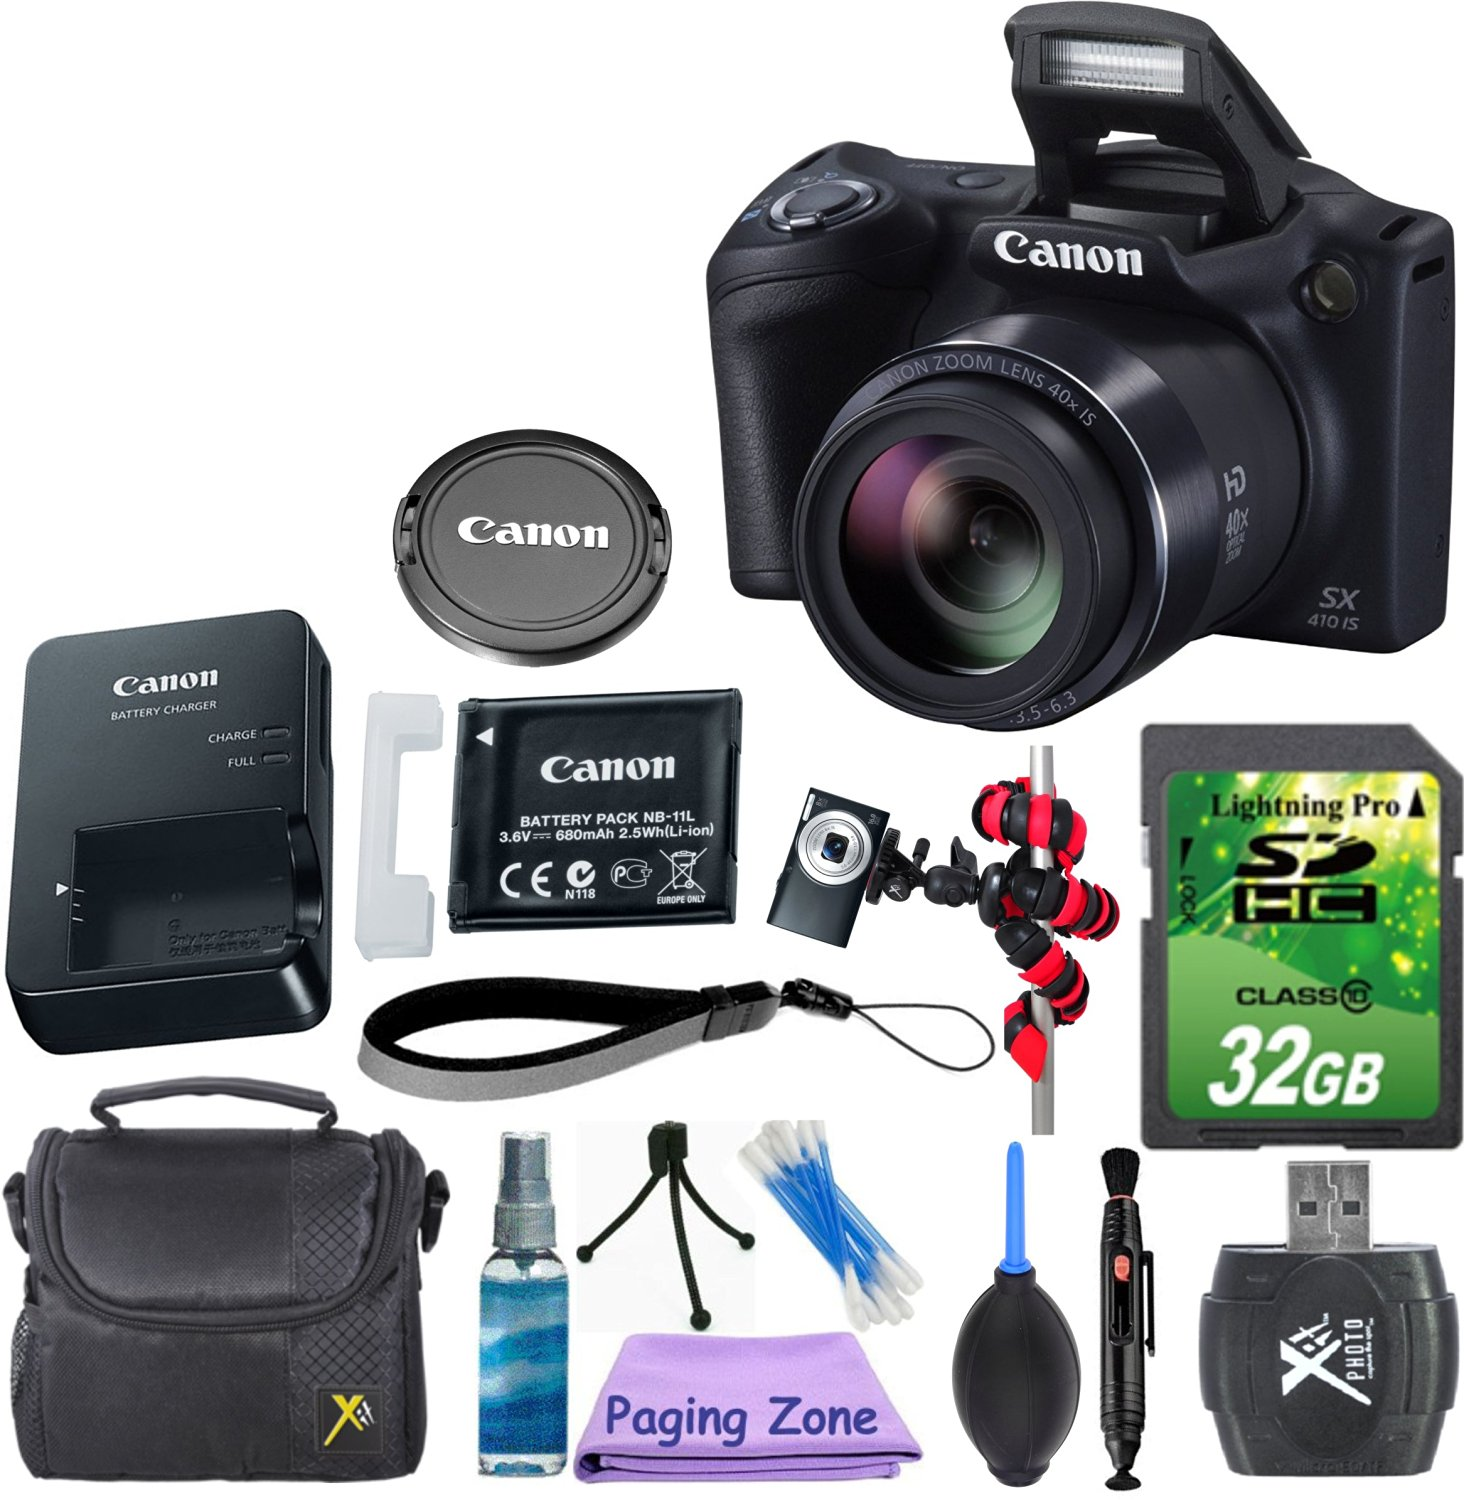 Canon PowerShot SX410 IS (Black) with 32GB Memory Card + Gorillapod Flexible Tripod + Rubber Air Blower Pump Dust Cleaner + Lens Cleaner + Point and Shoot Camera Case + Cleaning Kit